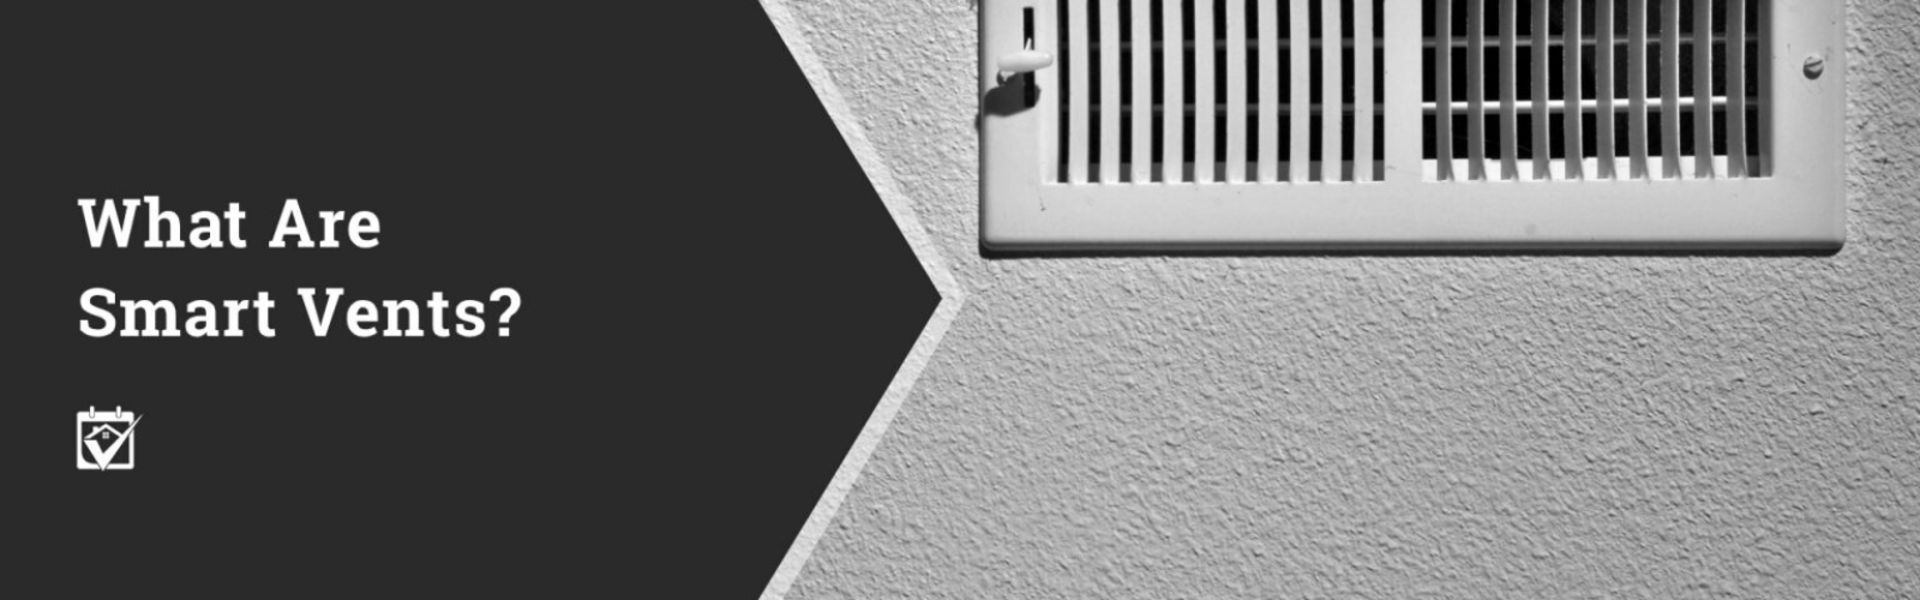 What Are Smart Vents?